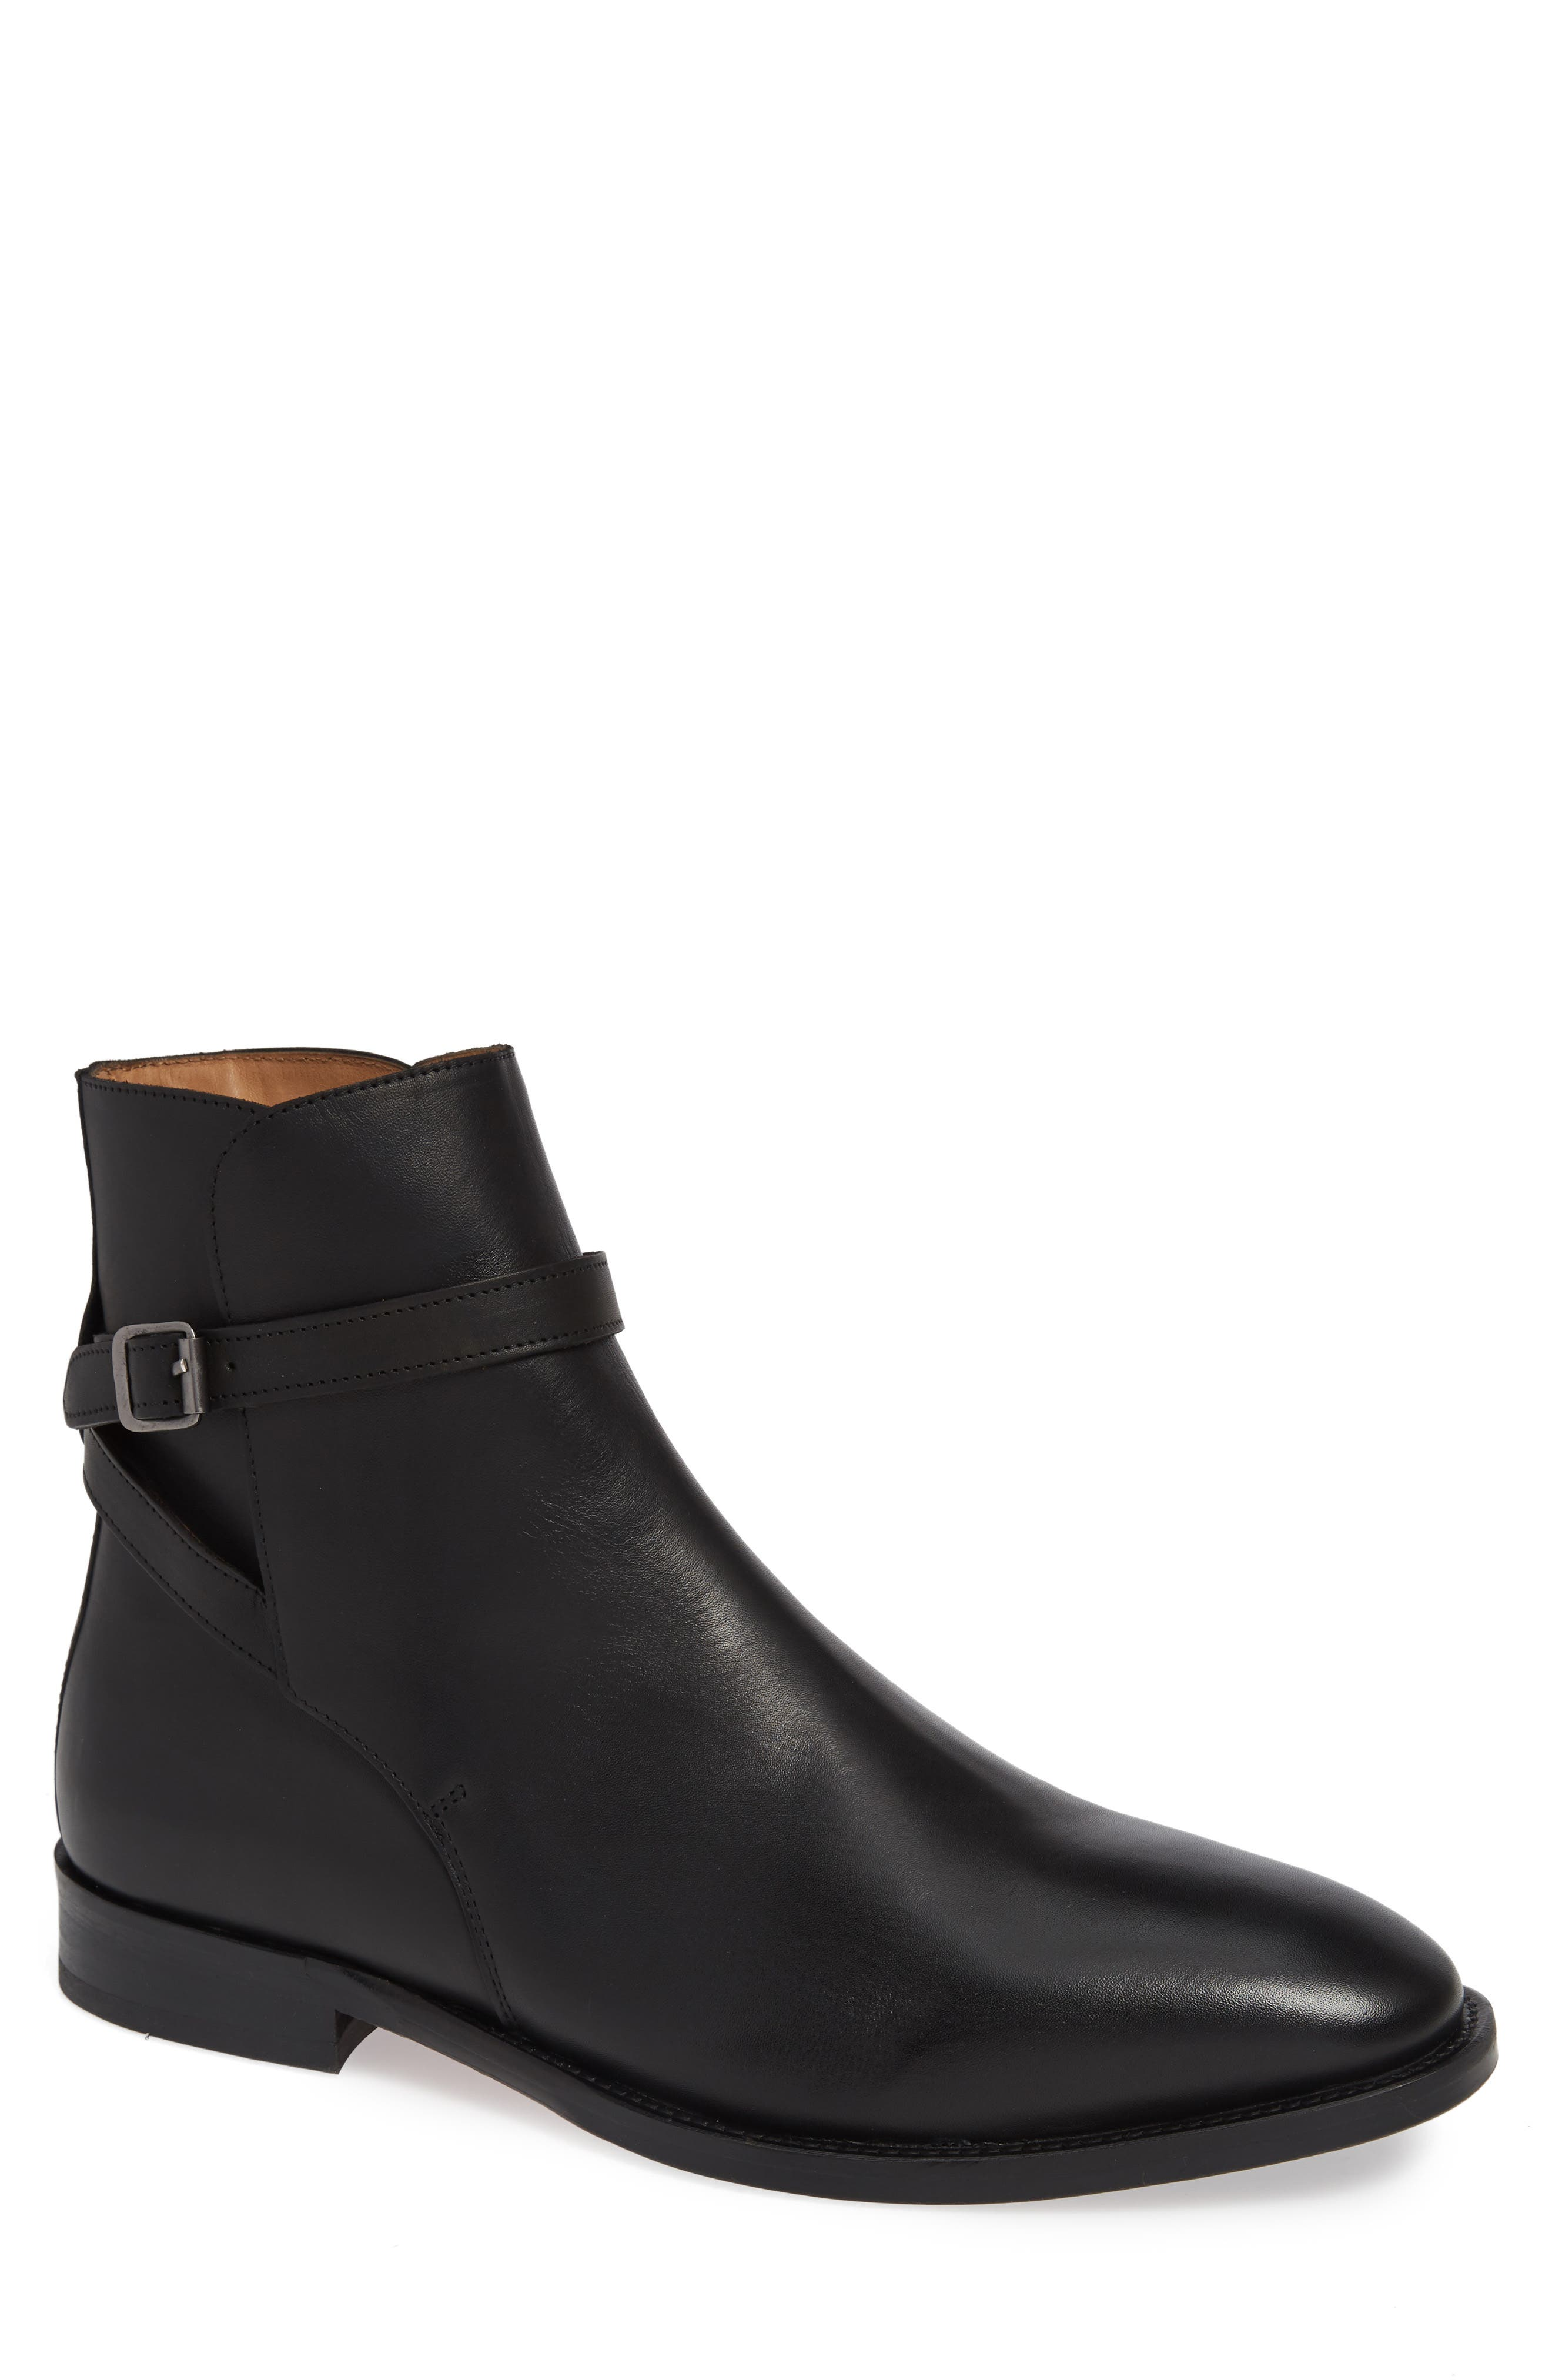 Hop Buckle Strap Boot, Main, color, BLACK LEATHER